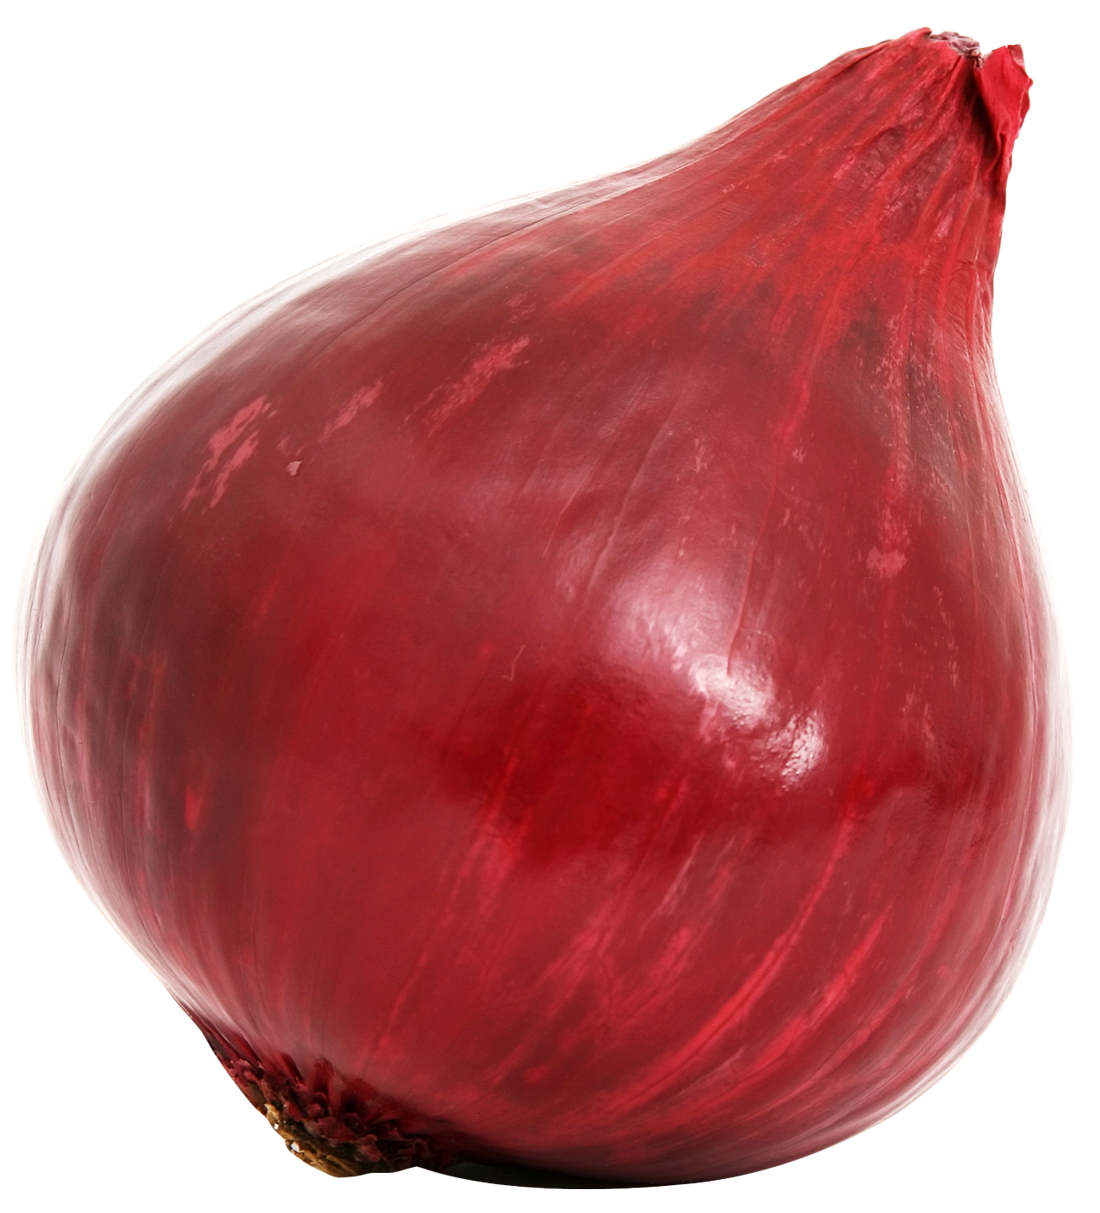 Red bulb png image. Onion clipart sliced onion